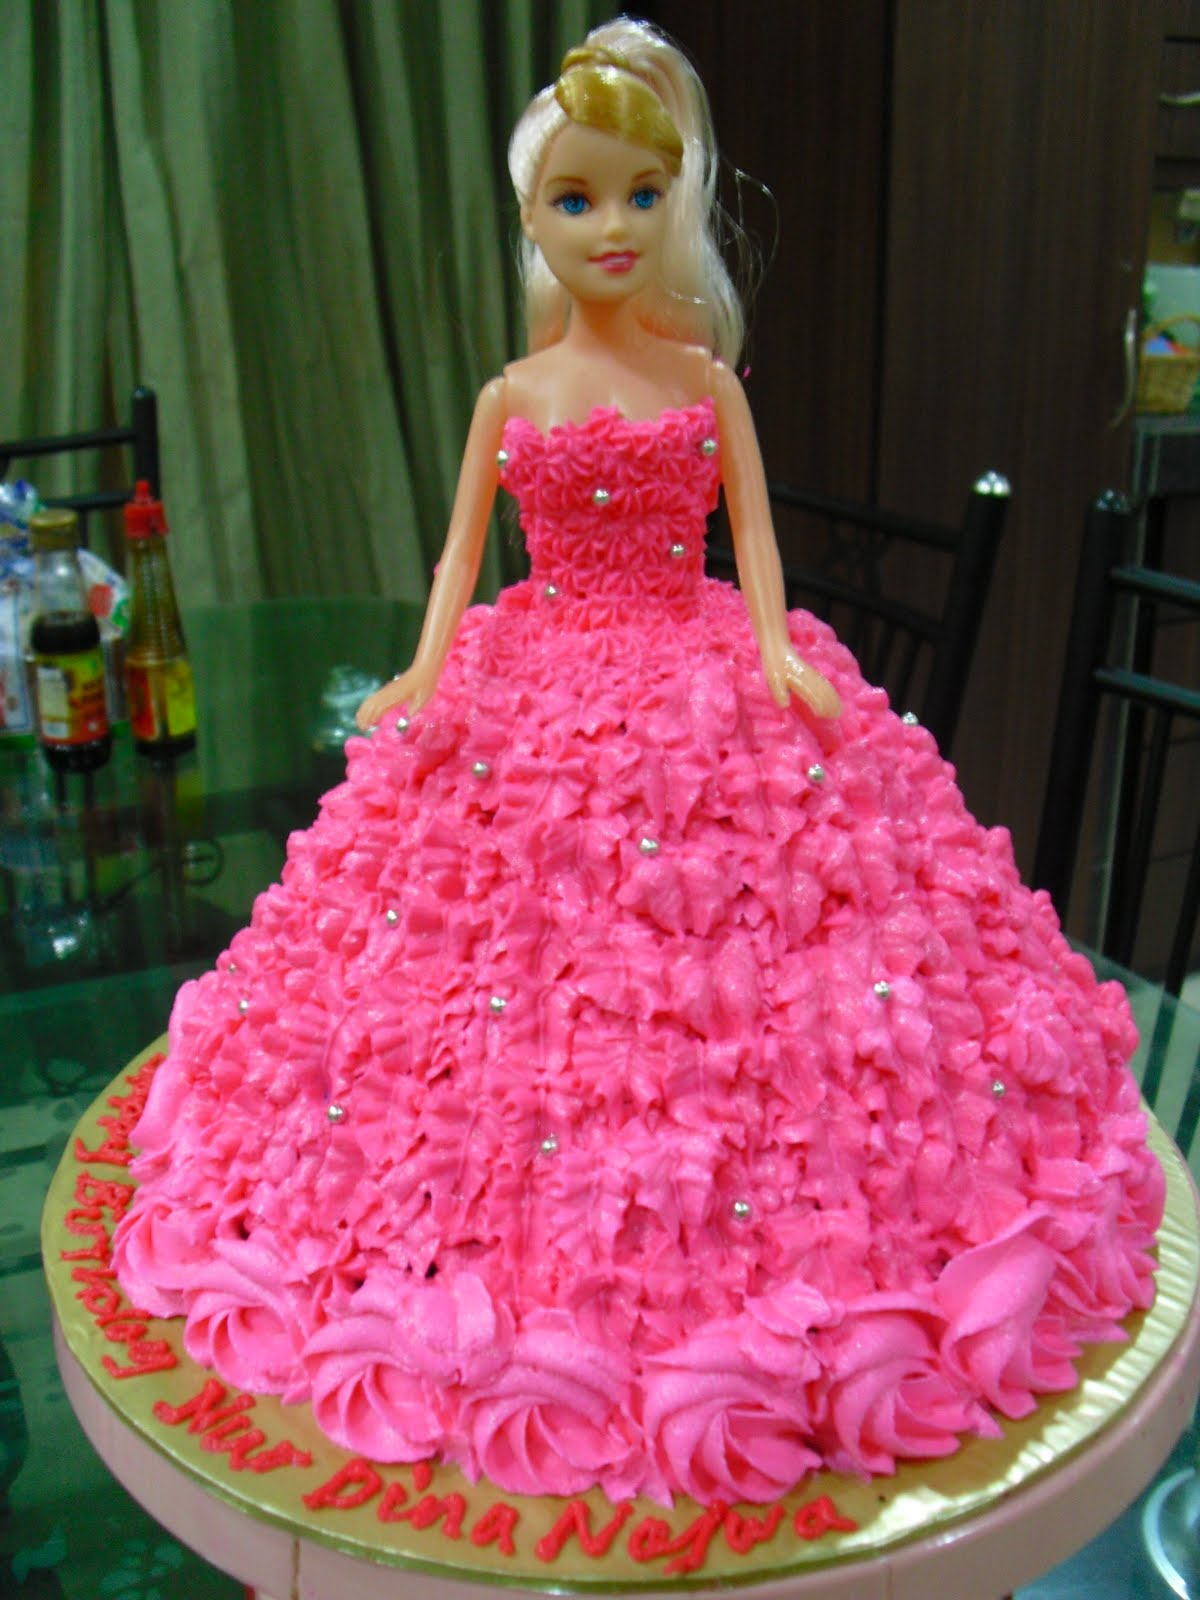 Happy Birthday Cake Barbie Doll Brithday Cake